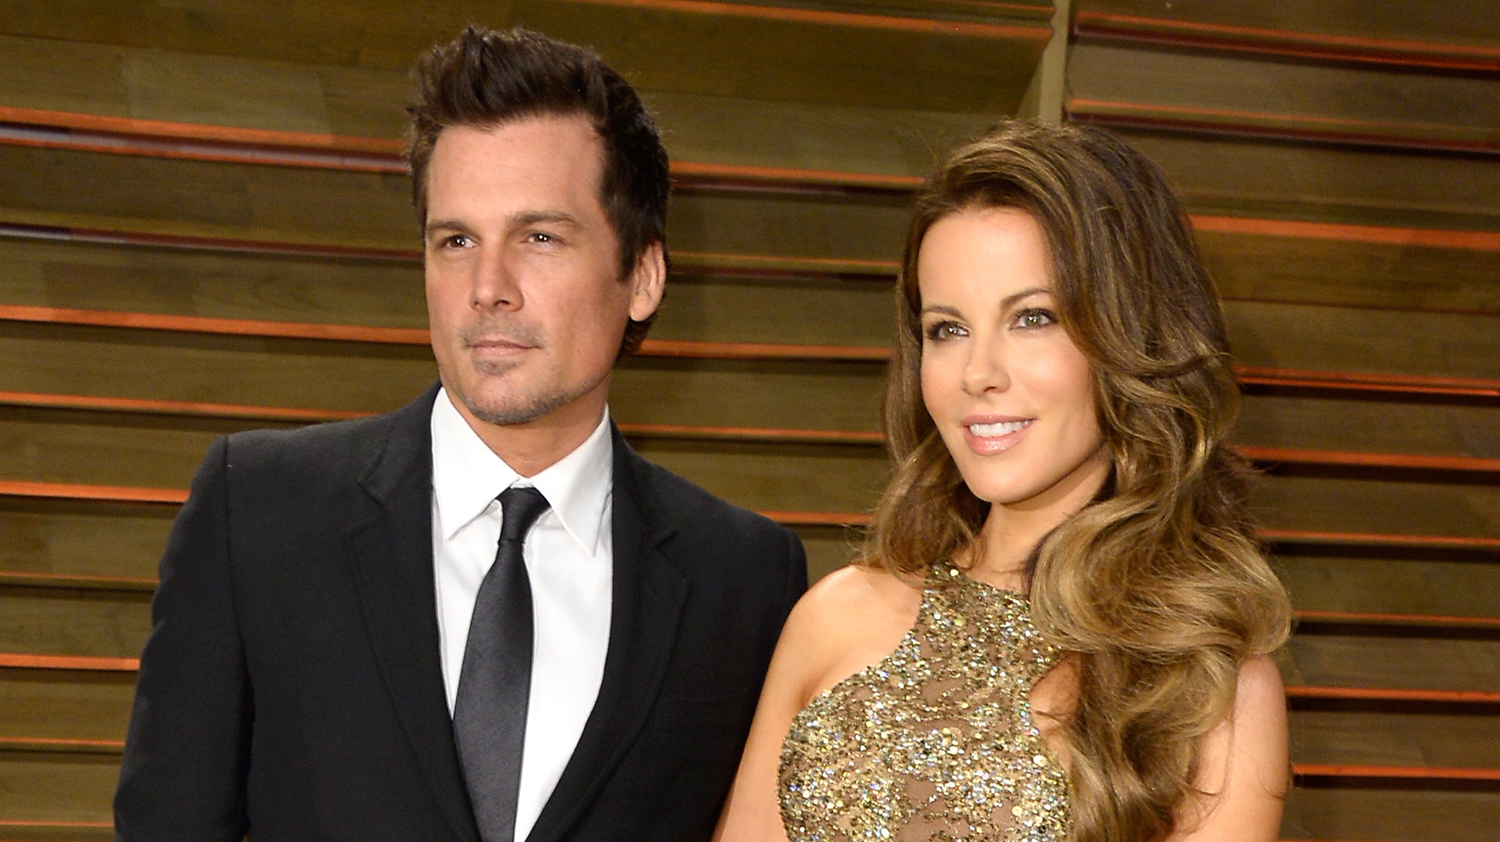 Kate Beckinsale Splits up With 'Underworld' Director Len Wiseman: Here's why